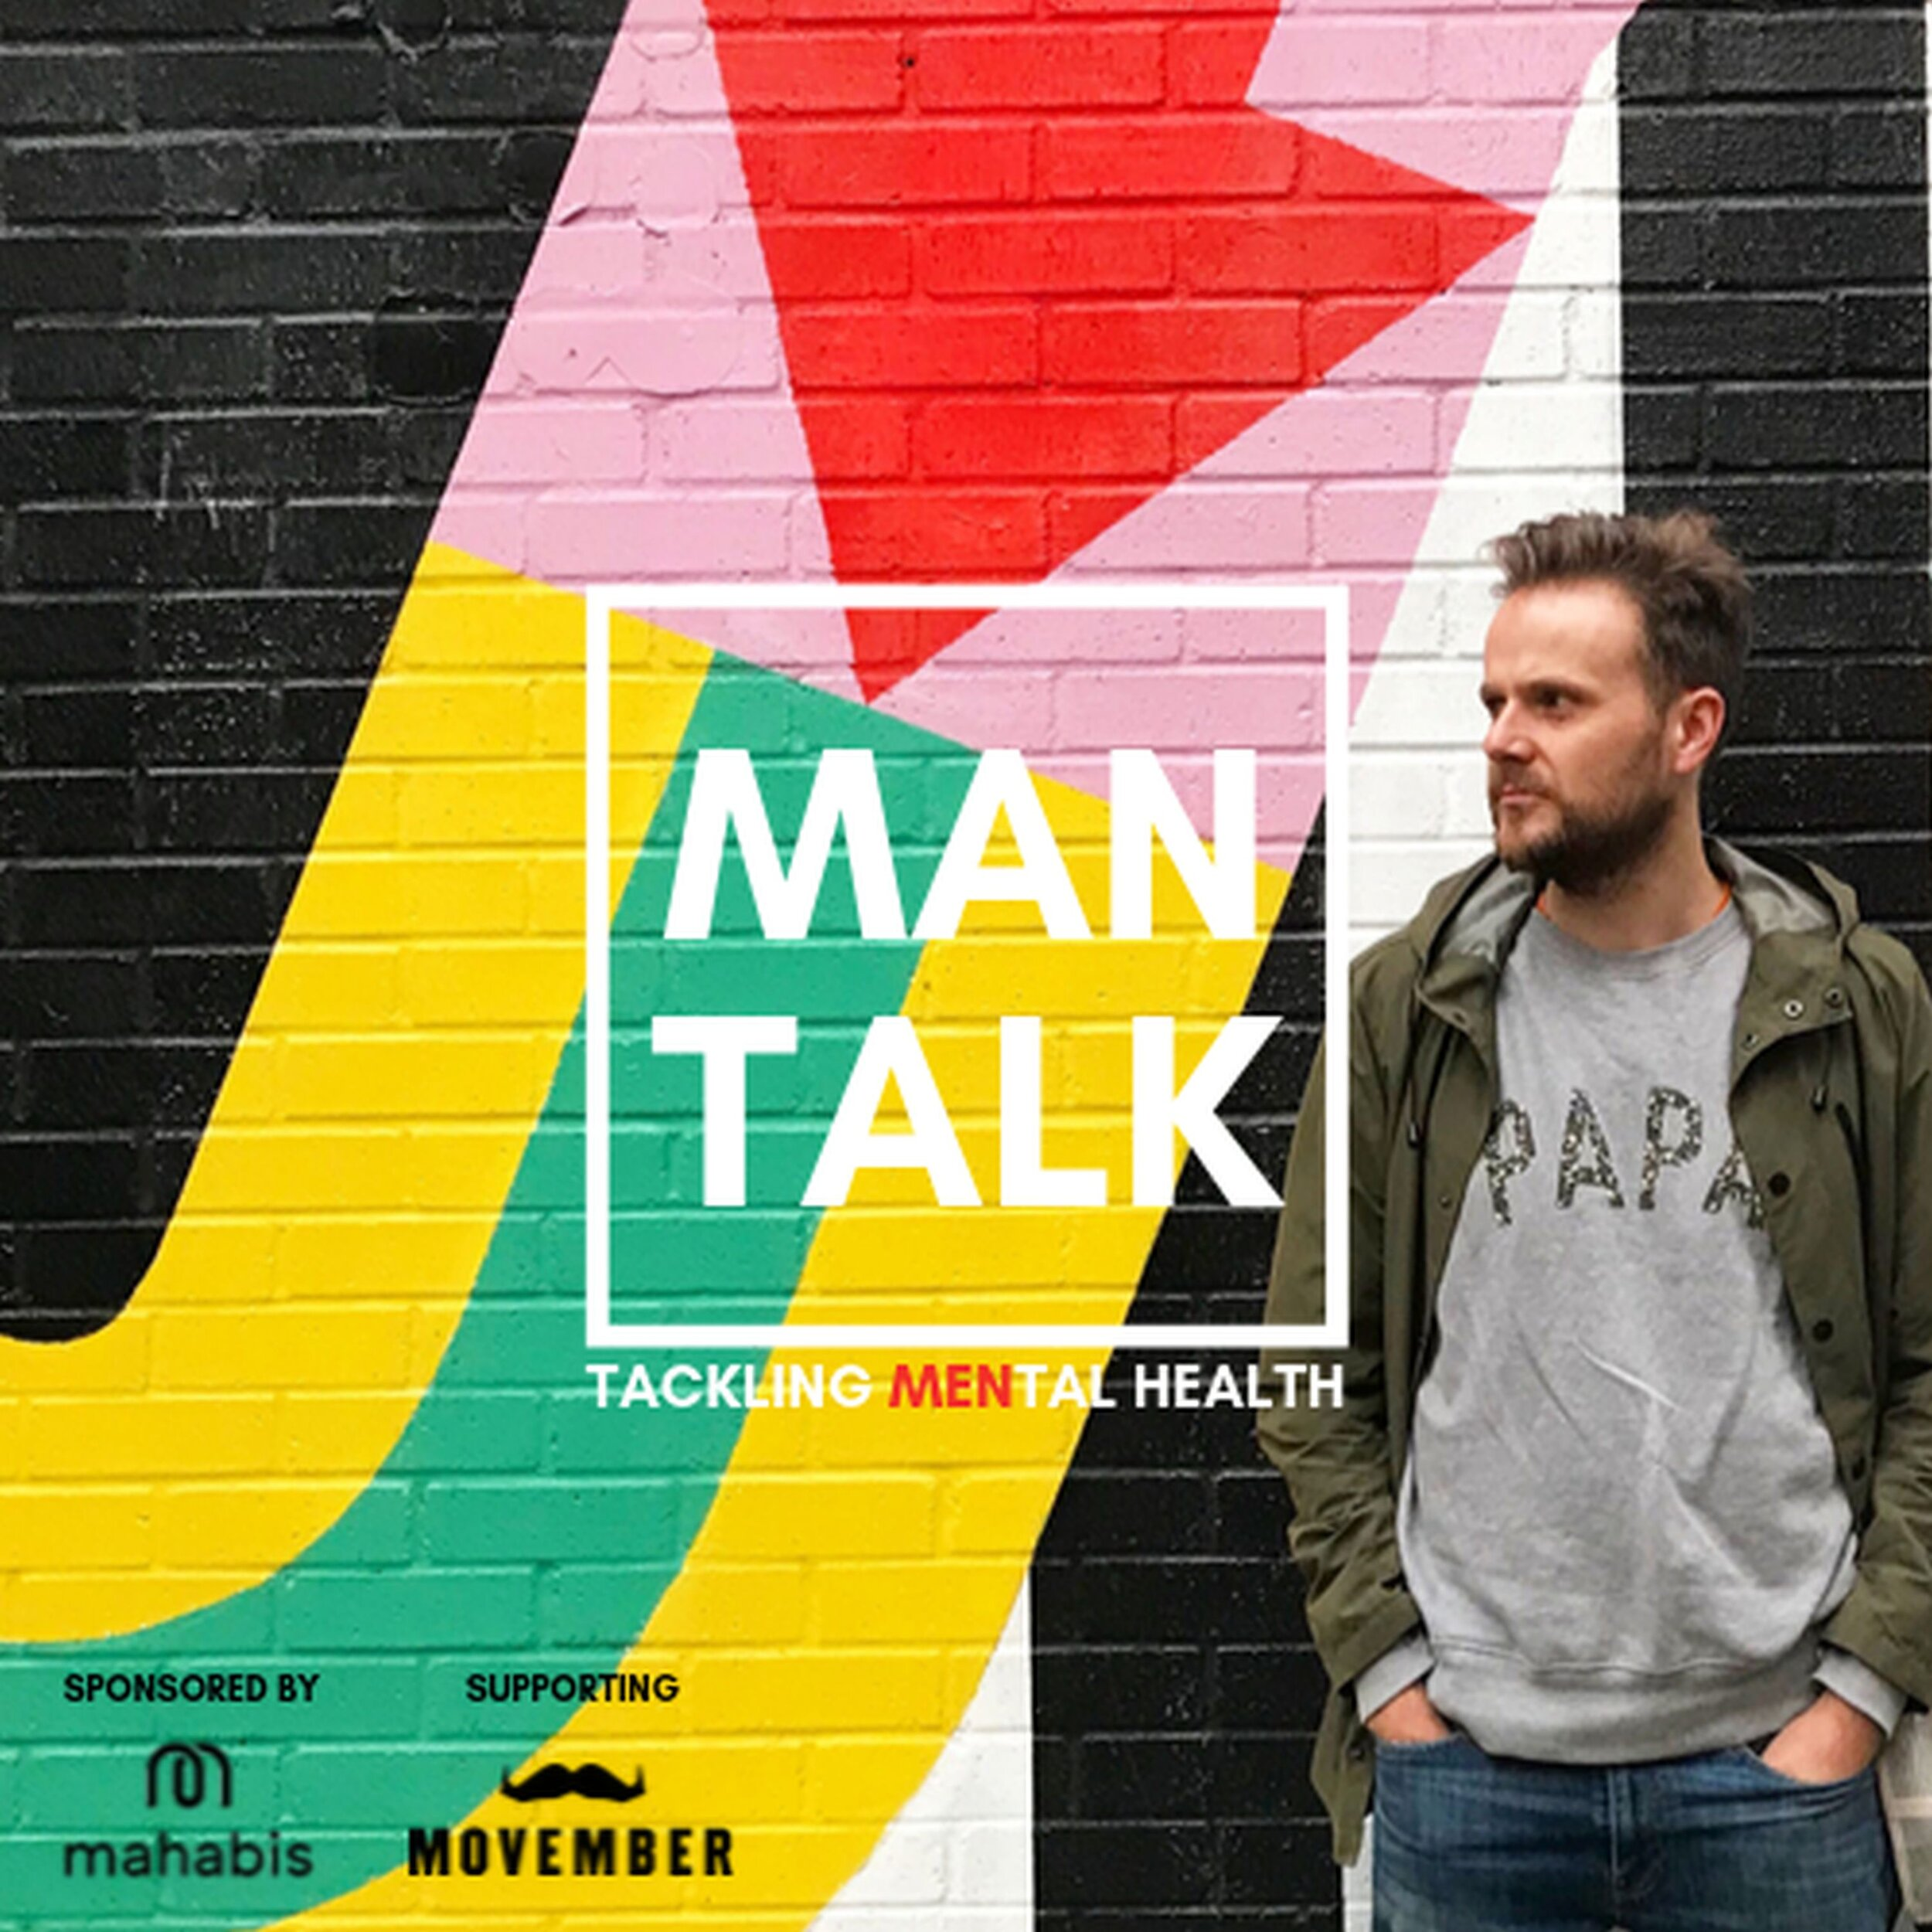 Copy of man talk for itunes (5) 3000.jpg